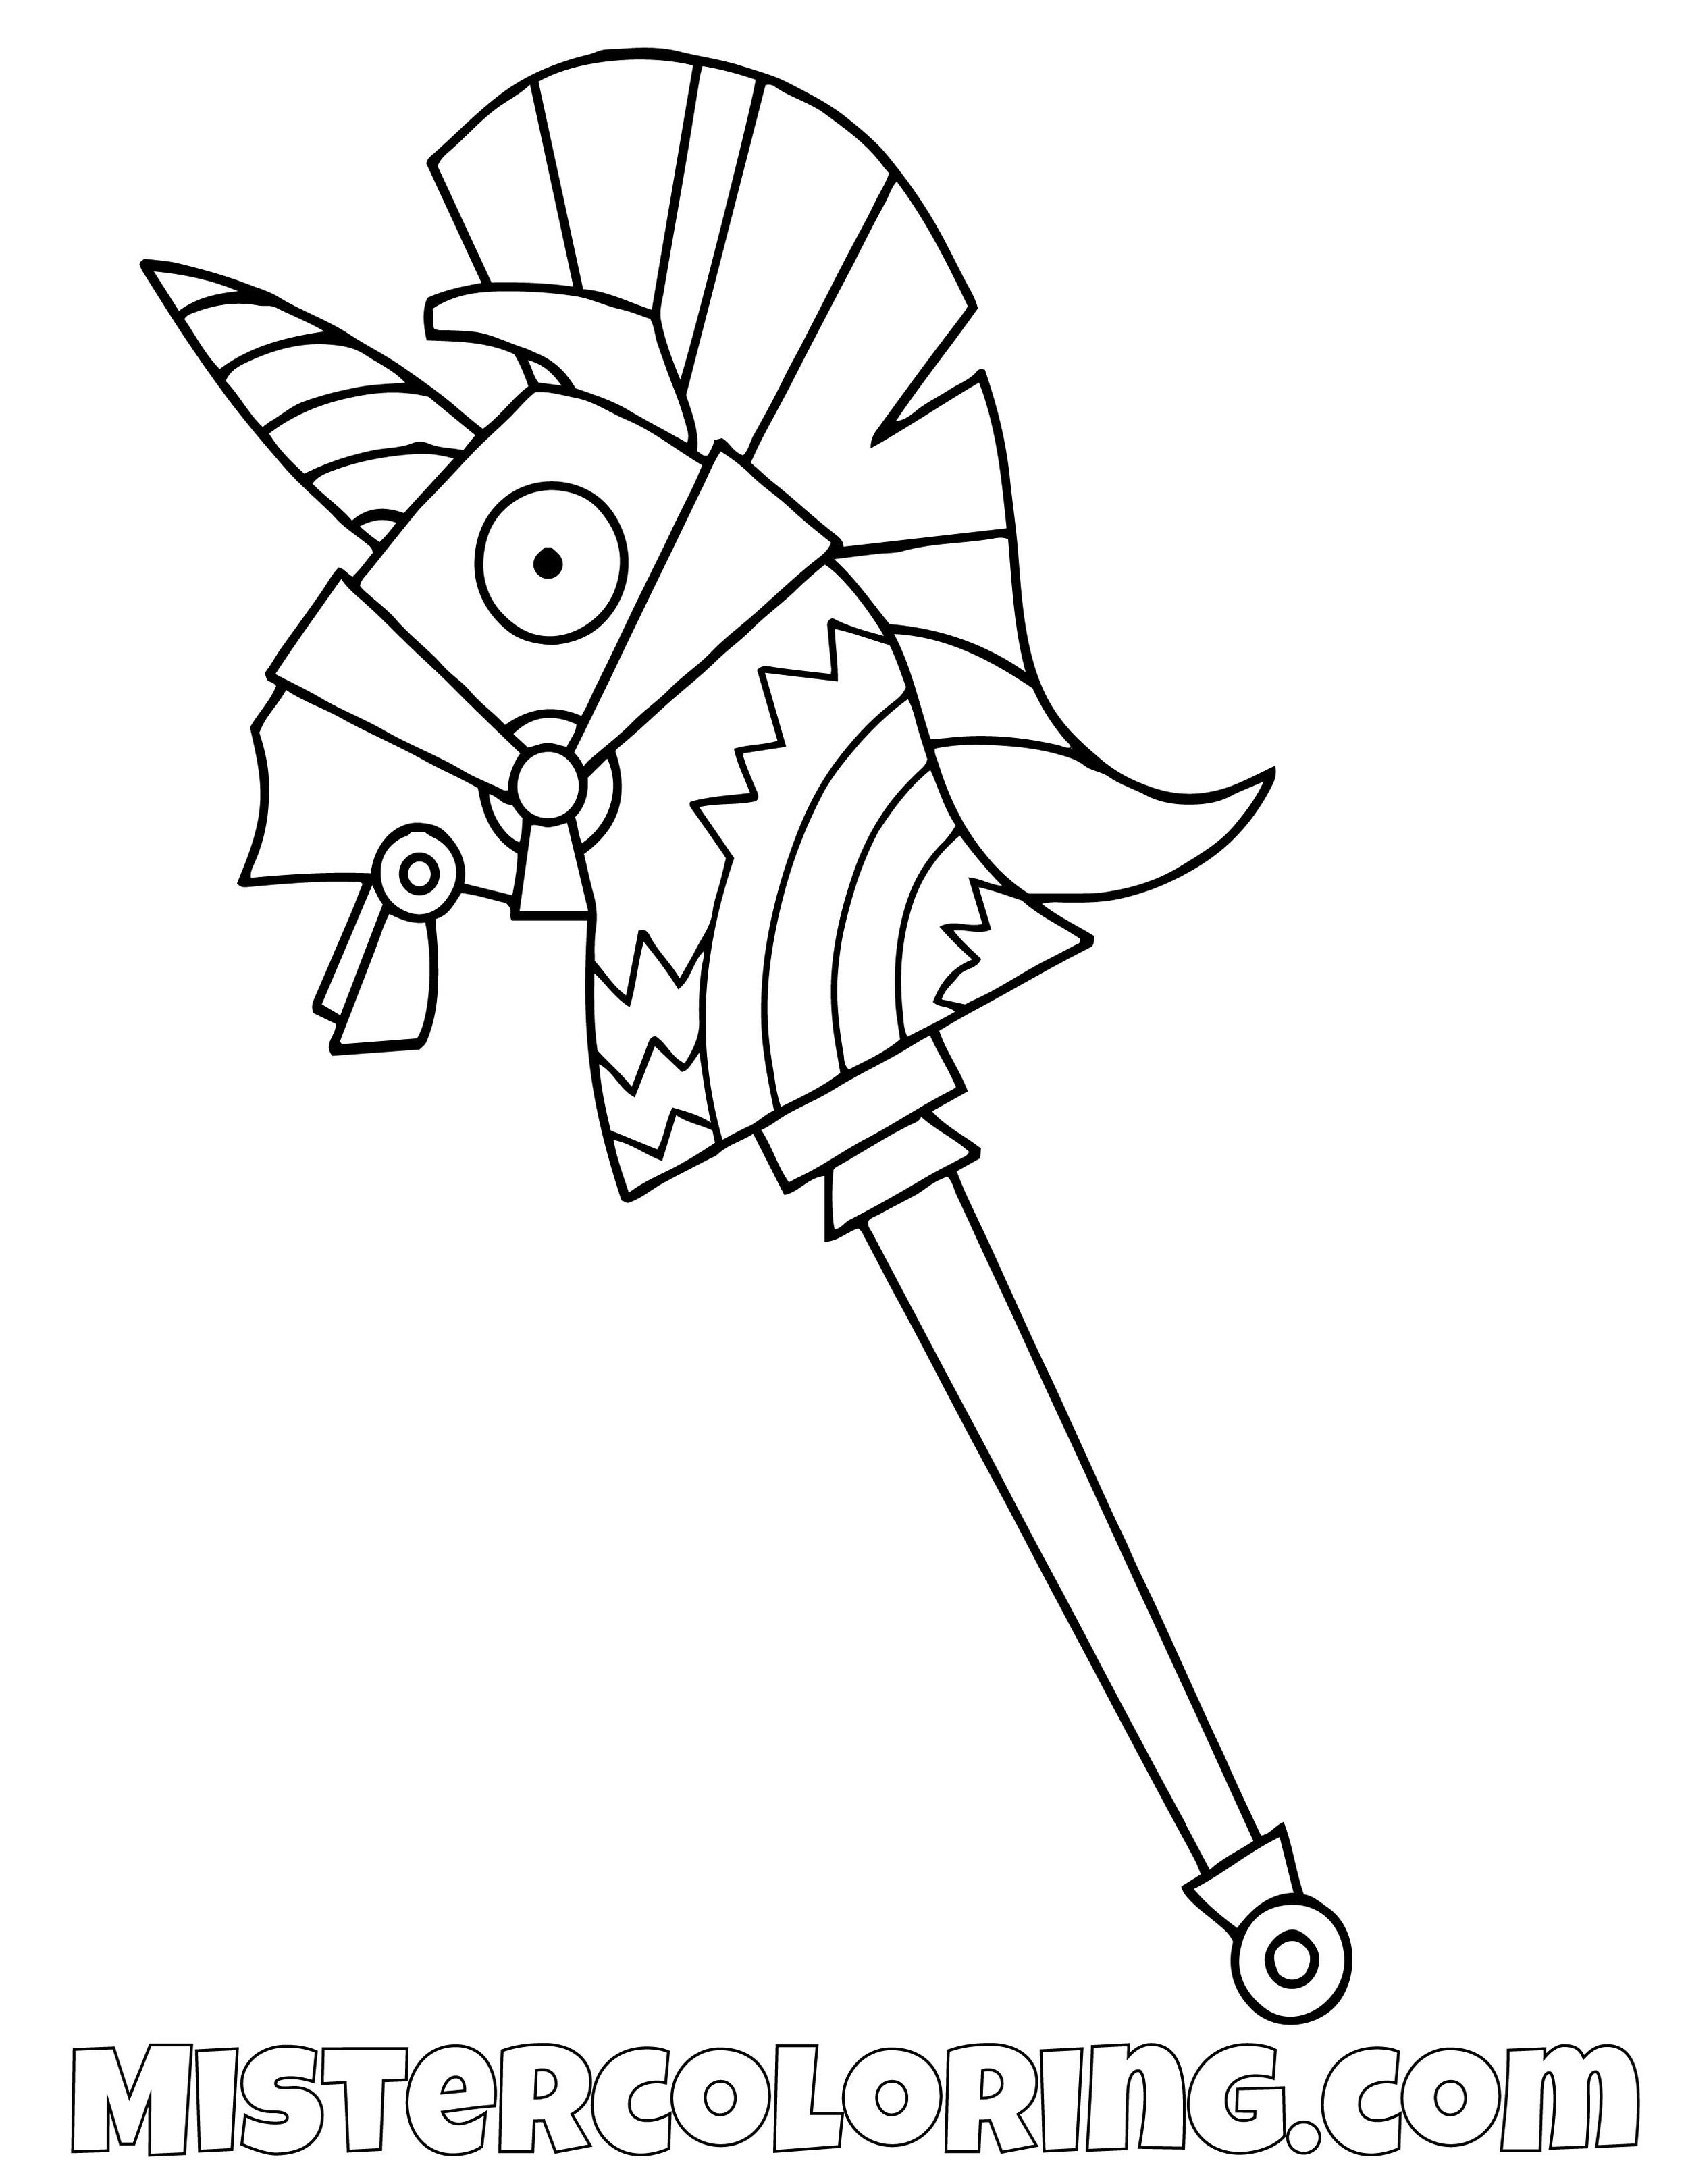 Rainbow Smash Pickaxe Fortnite Coloring Page